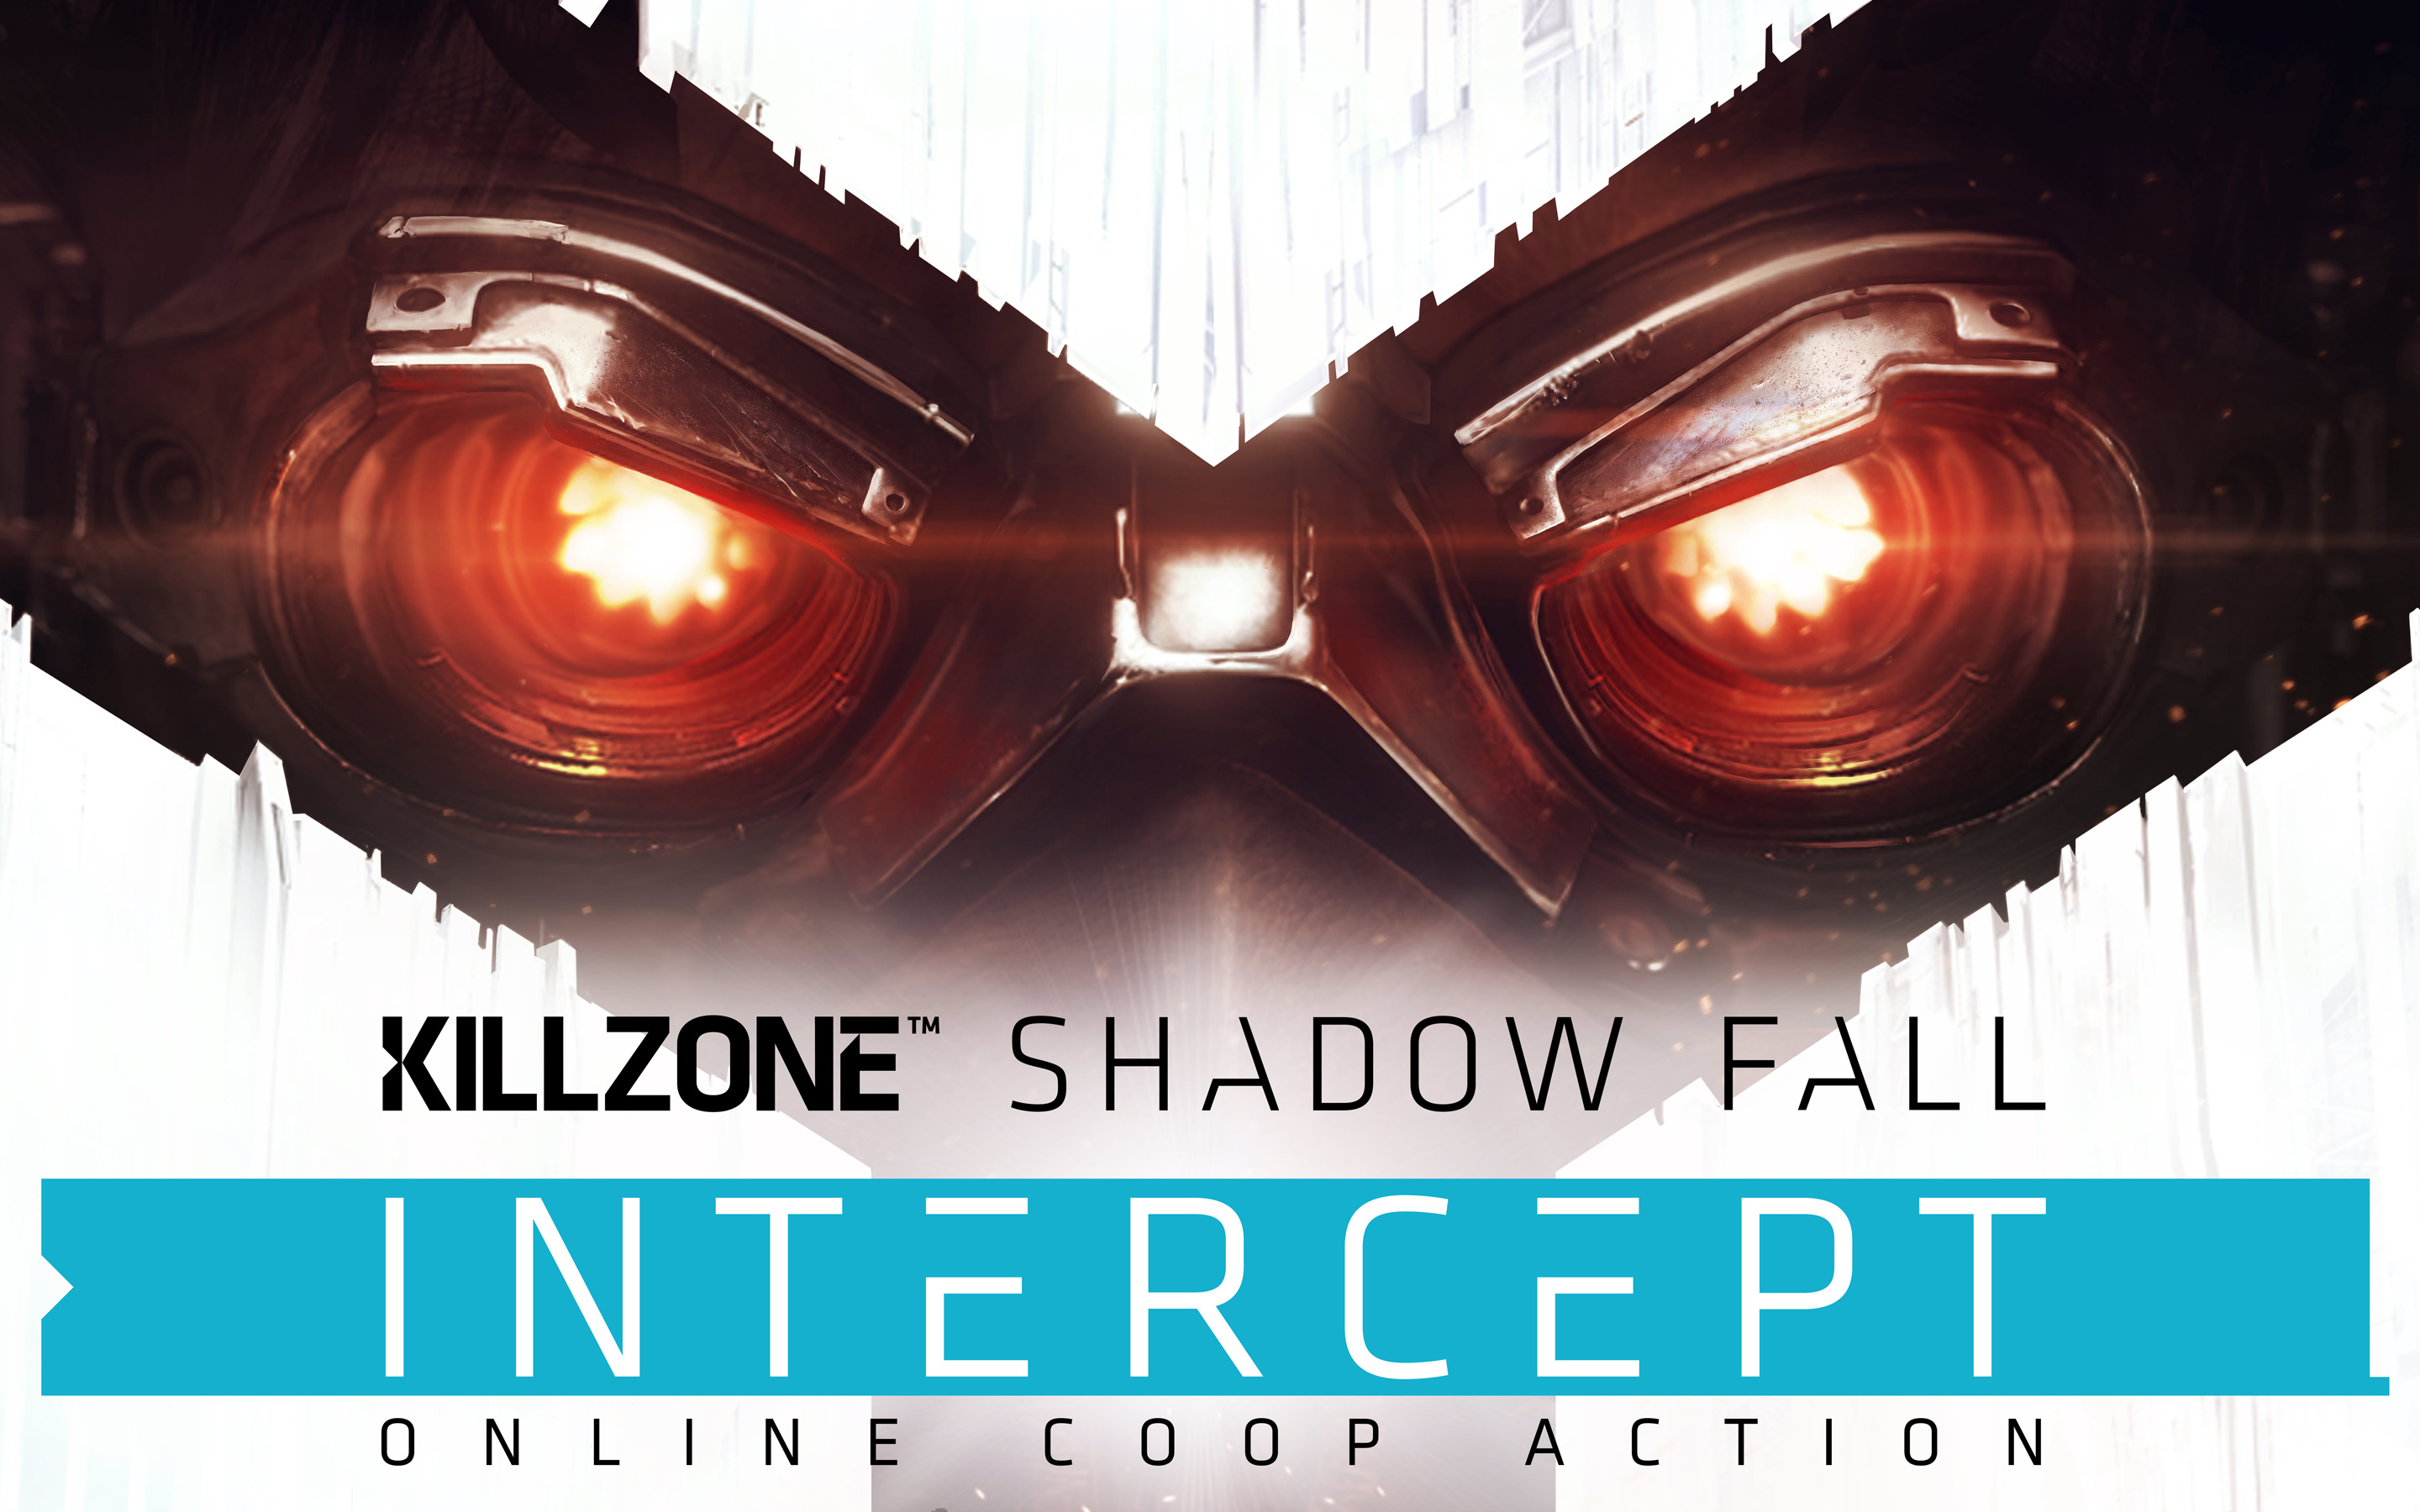 Killzone Shadow Fall Intercept 607.19 Kb